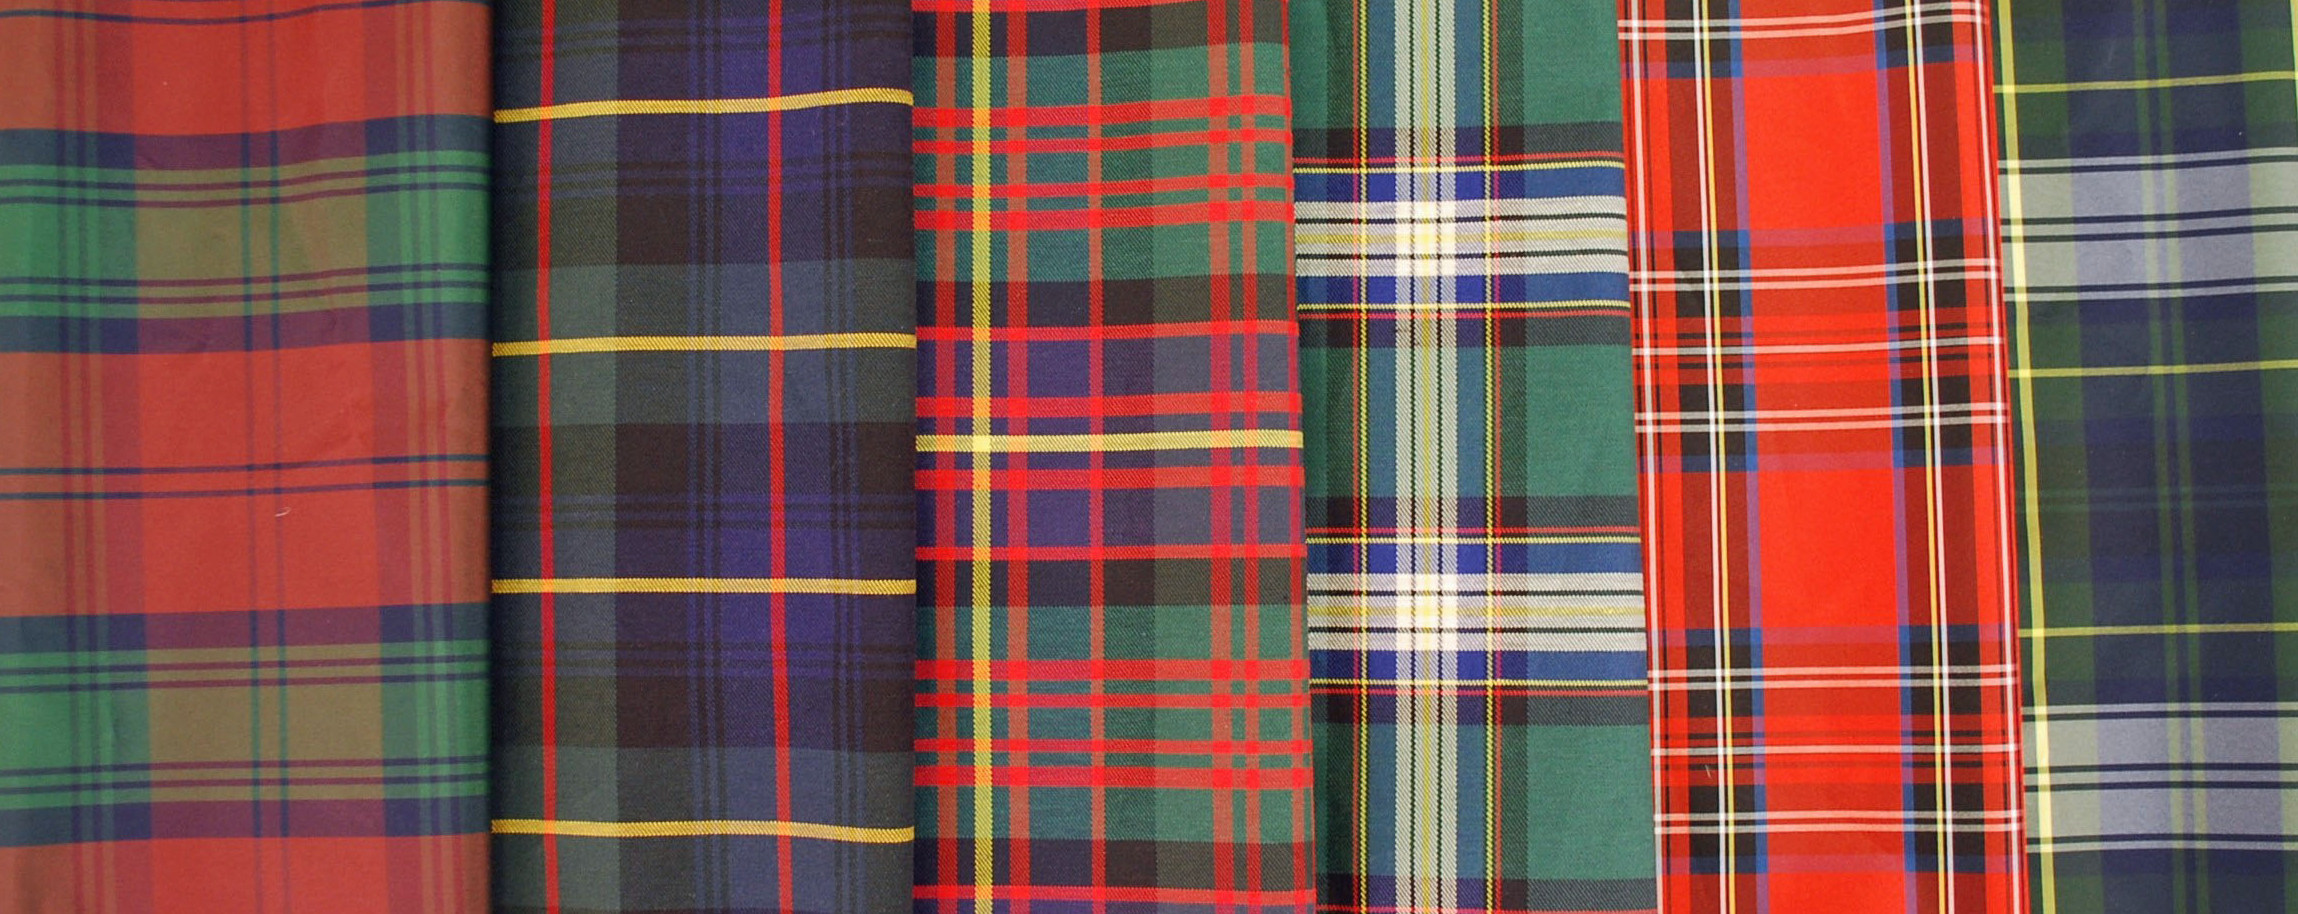 Mad For Plaid: How to Work Tartans Into Your Wardrobe ...